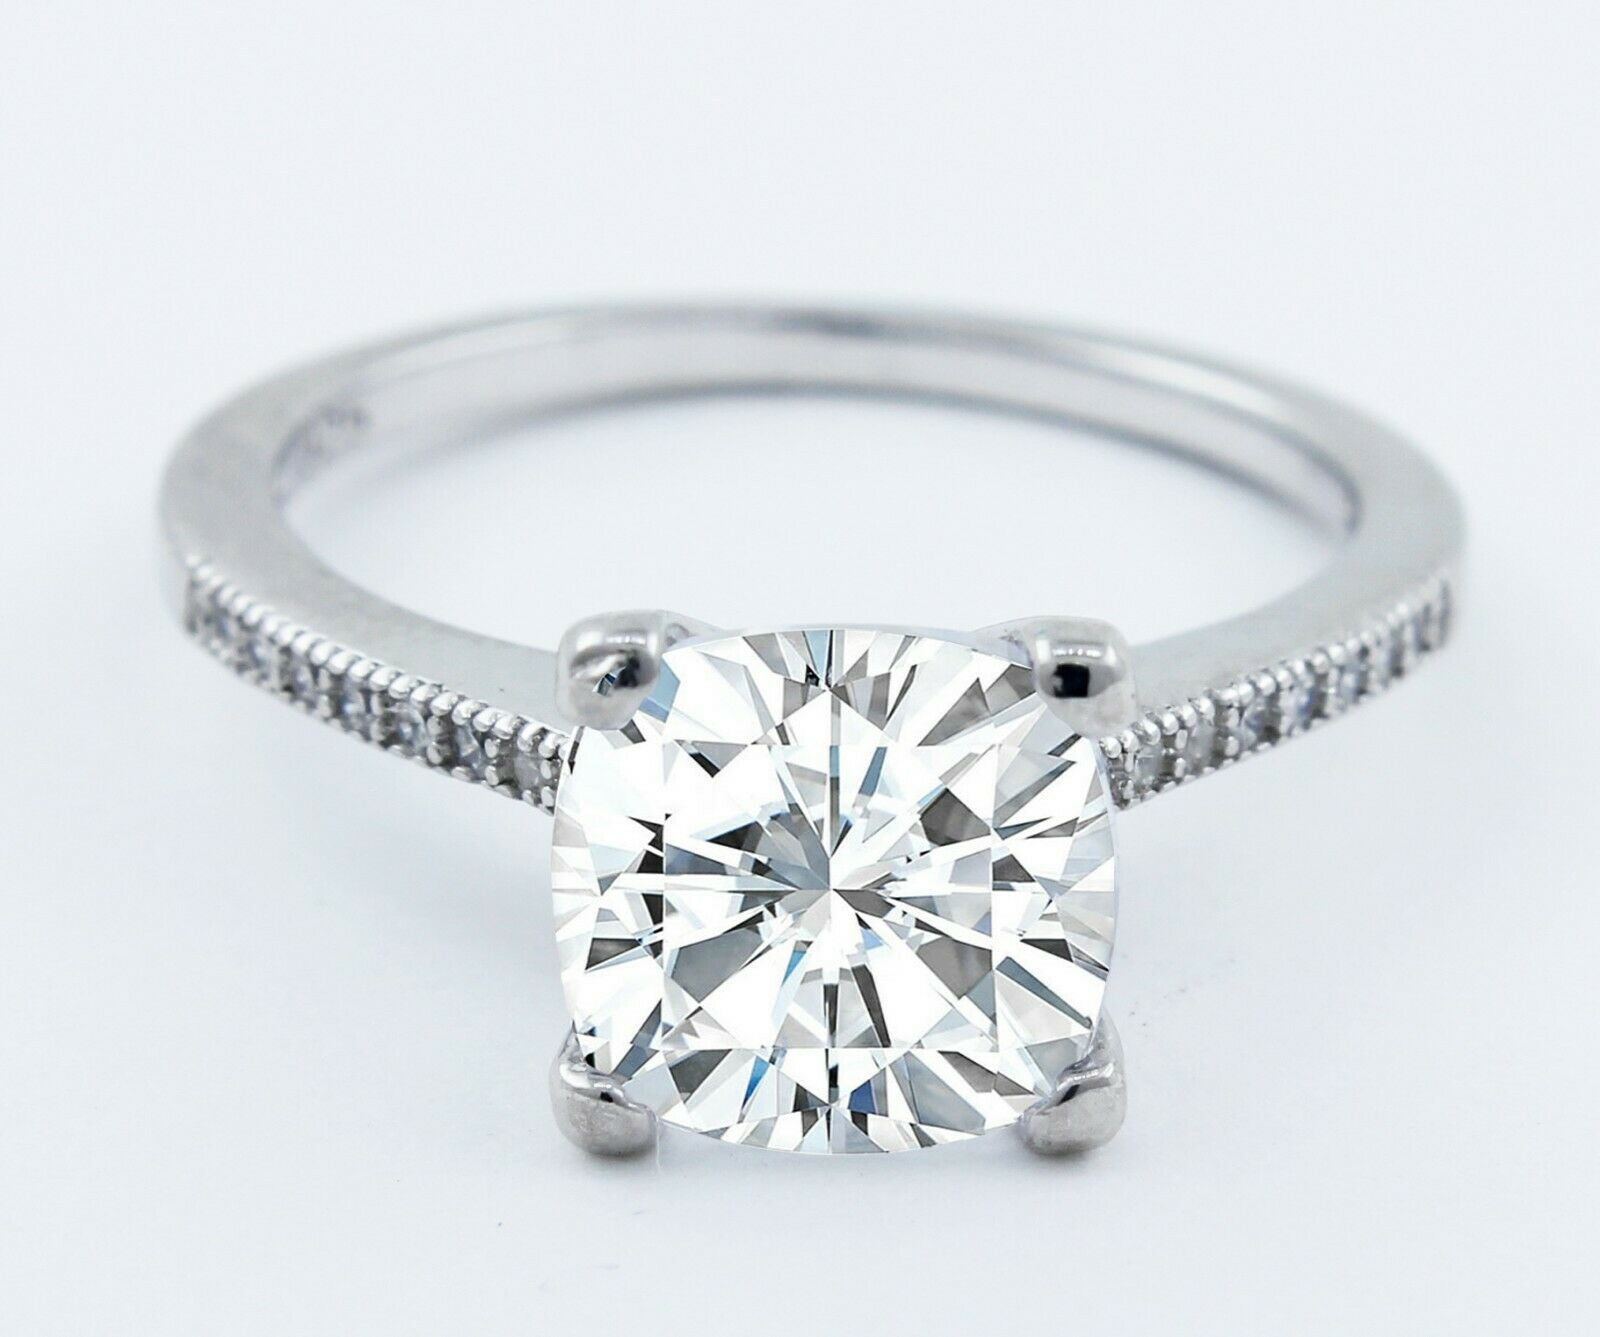 GIA Certified Diamond Engagement Ring in 18k Gold 1.31ctw  Cushion & Round Cut